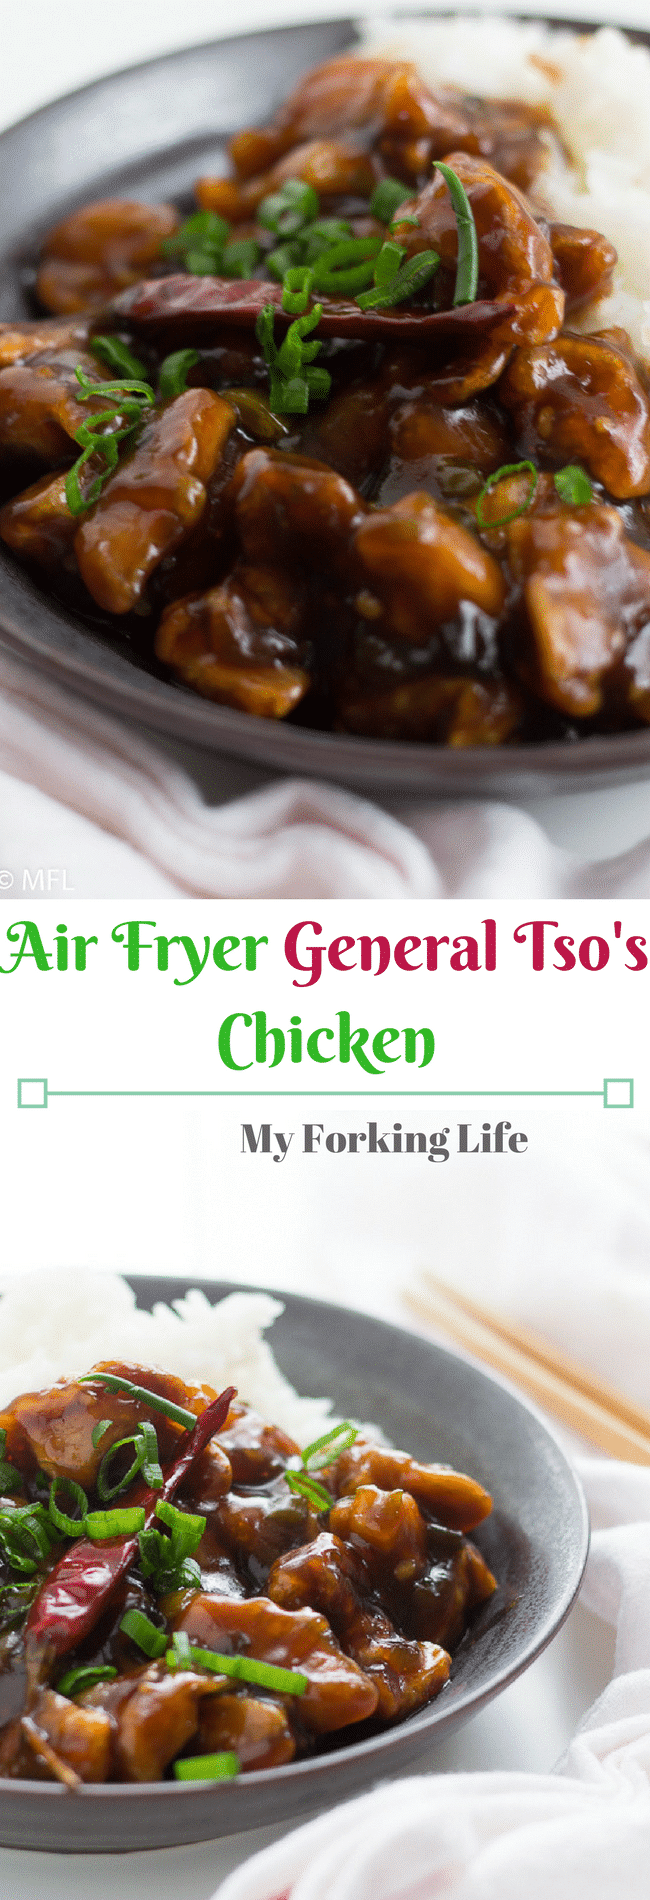 This healthy general tso's chicken recipe is made in the air fryer for a healthier take on the dish. Have dinner ready in 30 minutes or less. #weeknightdinner #asiandinner #healthydinner #healthy #airfryerrecipes #airfryer #airfryerchicken #quickdinner #dinnerforbusypeople healthy general tso chicken recipe.